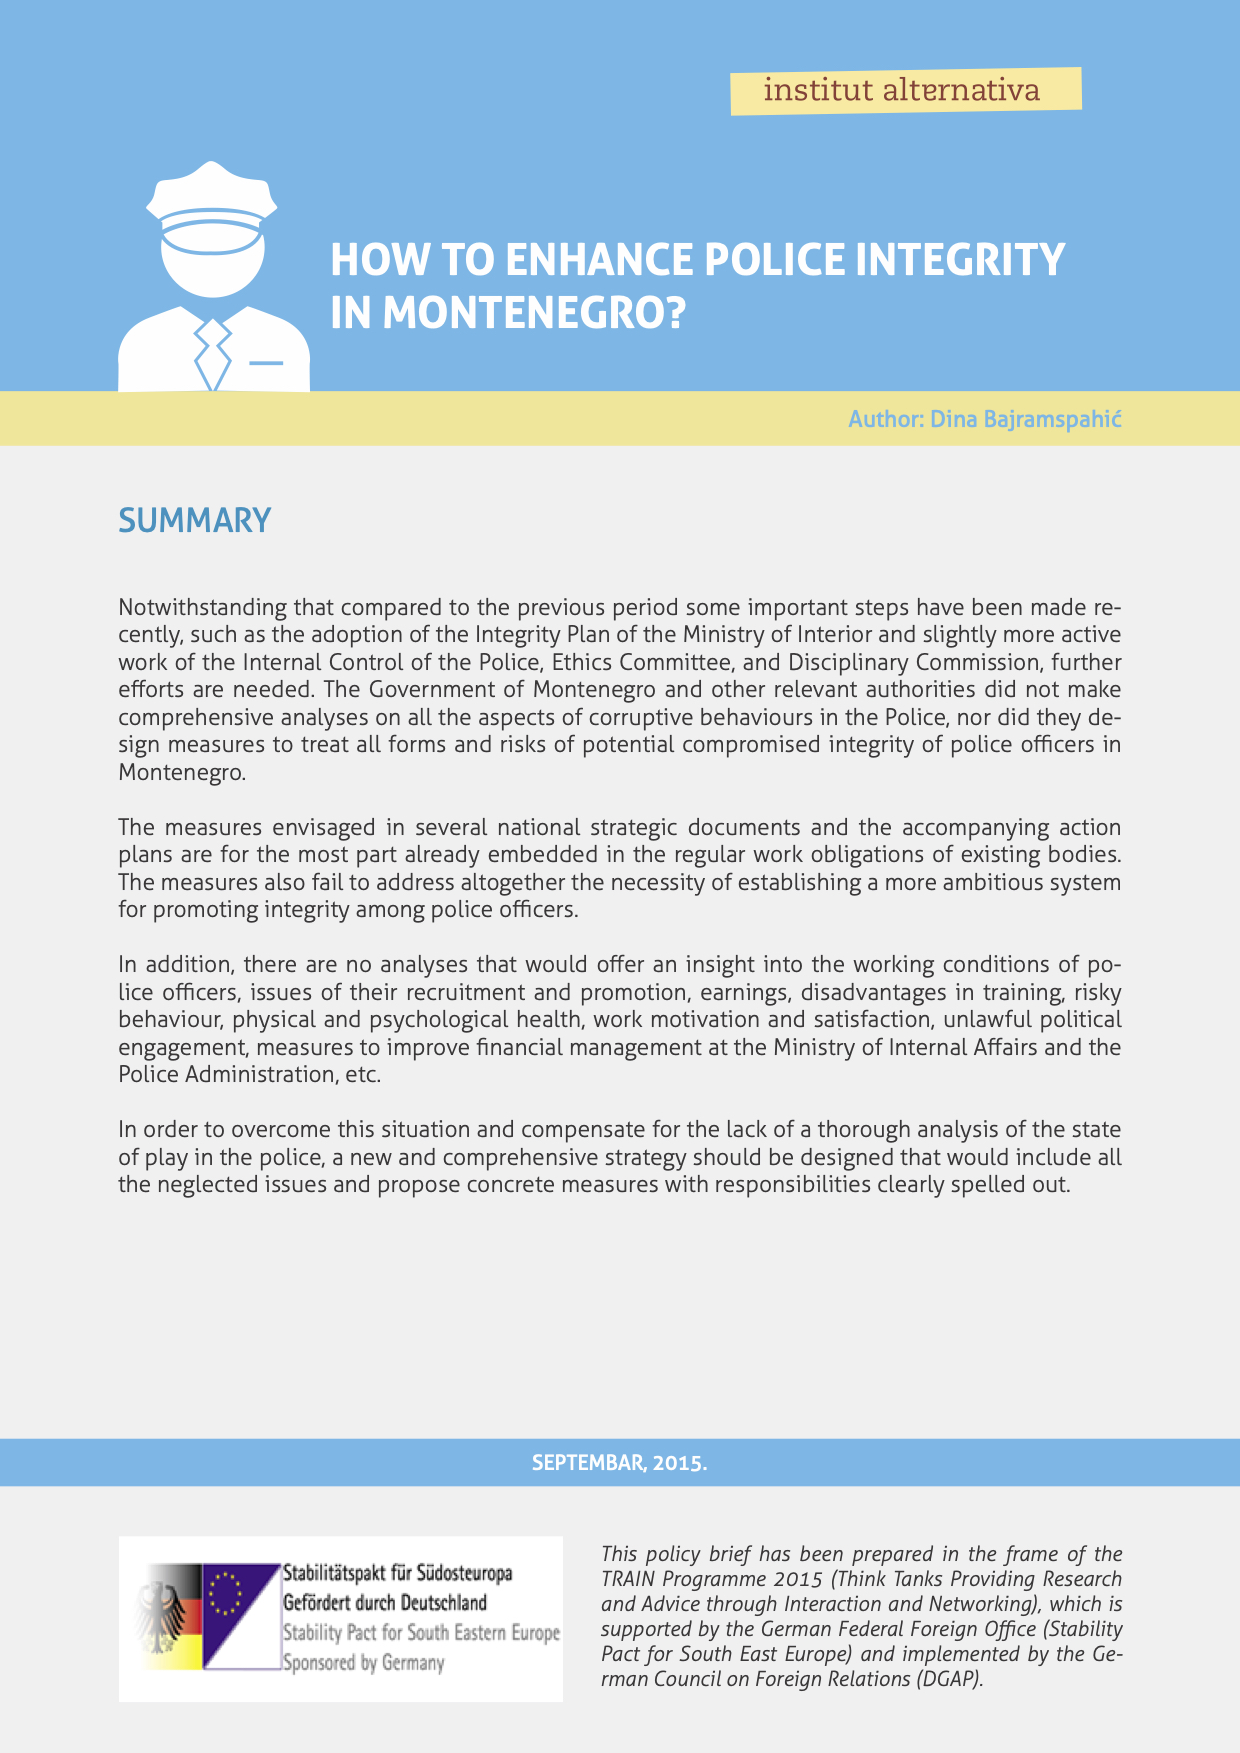 How to enhance police integrity in Montenegro?